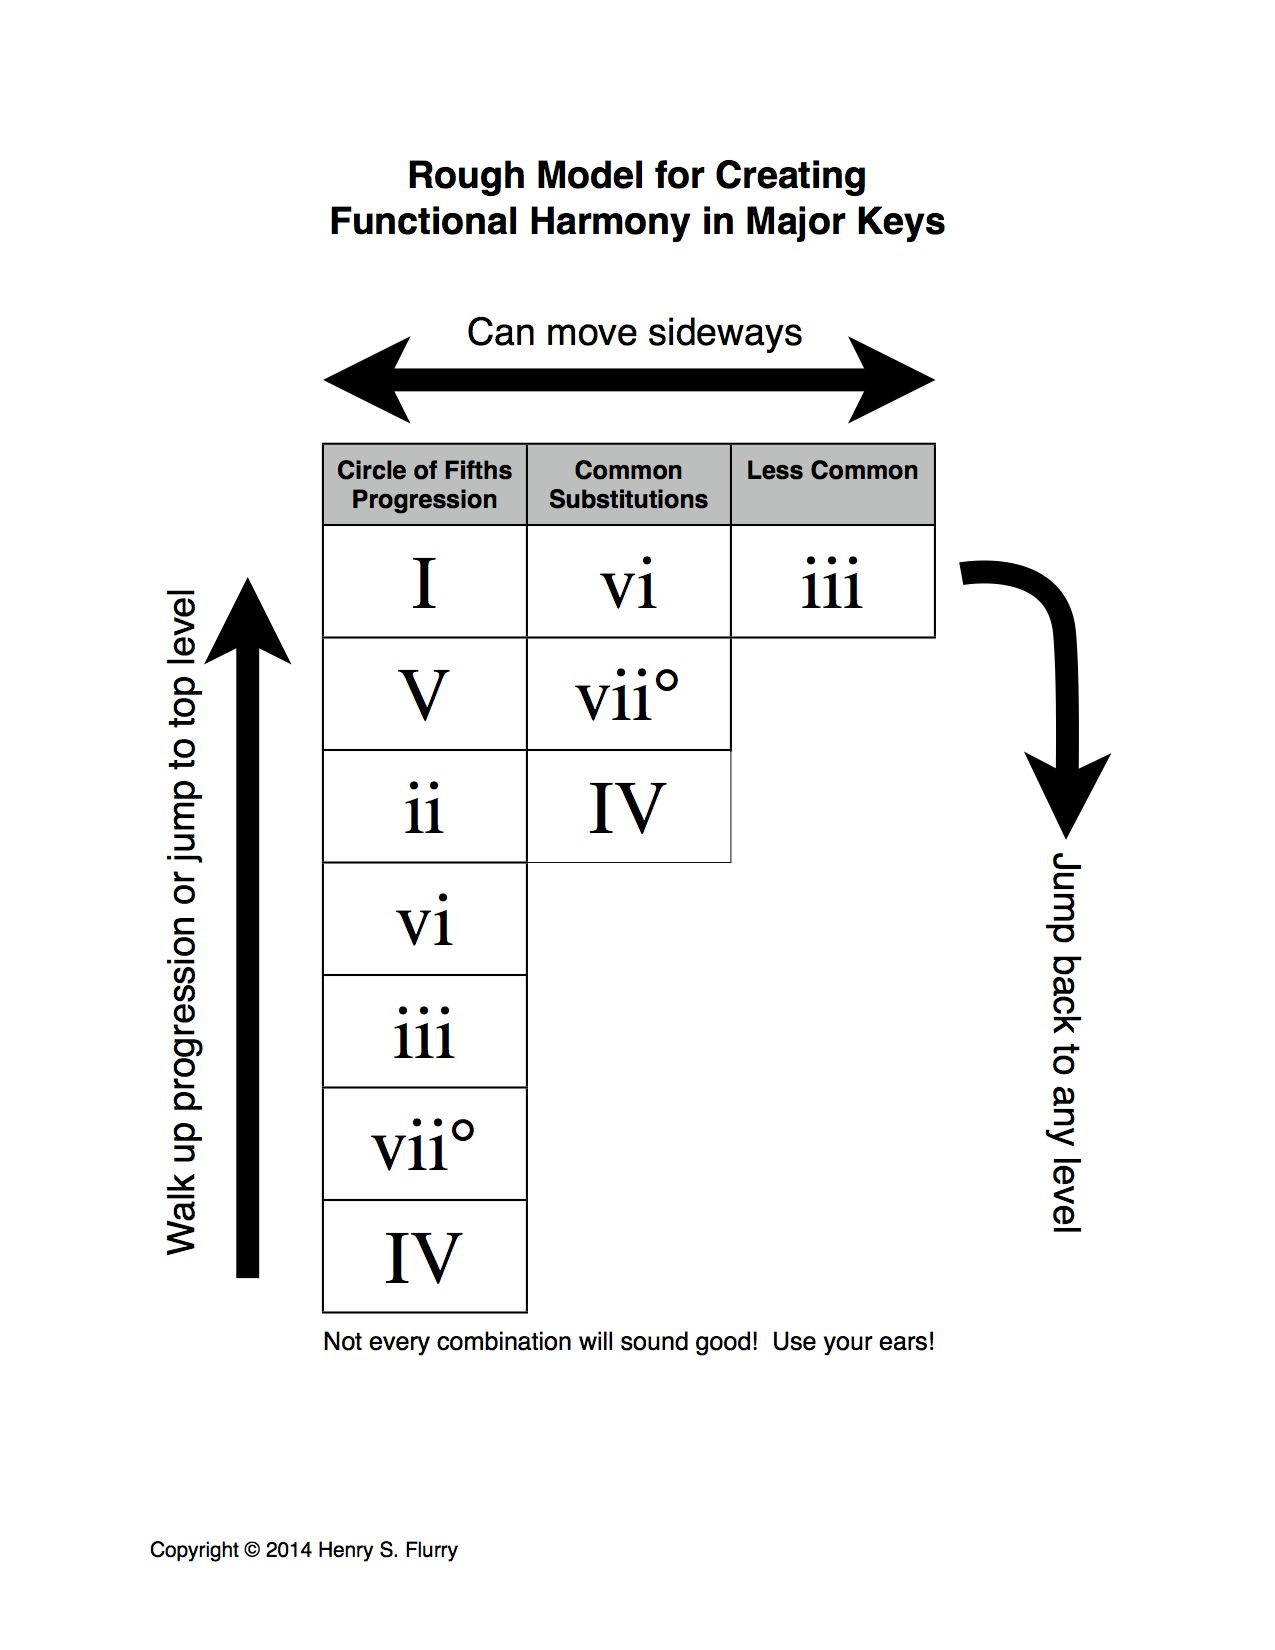 Practicing functional harmony with dice henry flurry harmonic progression flow chart hexwebz Choice Image